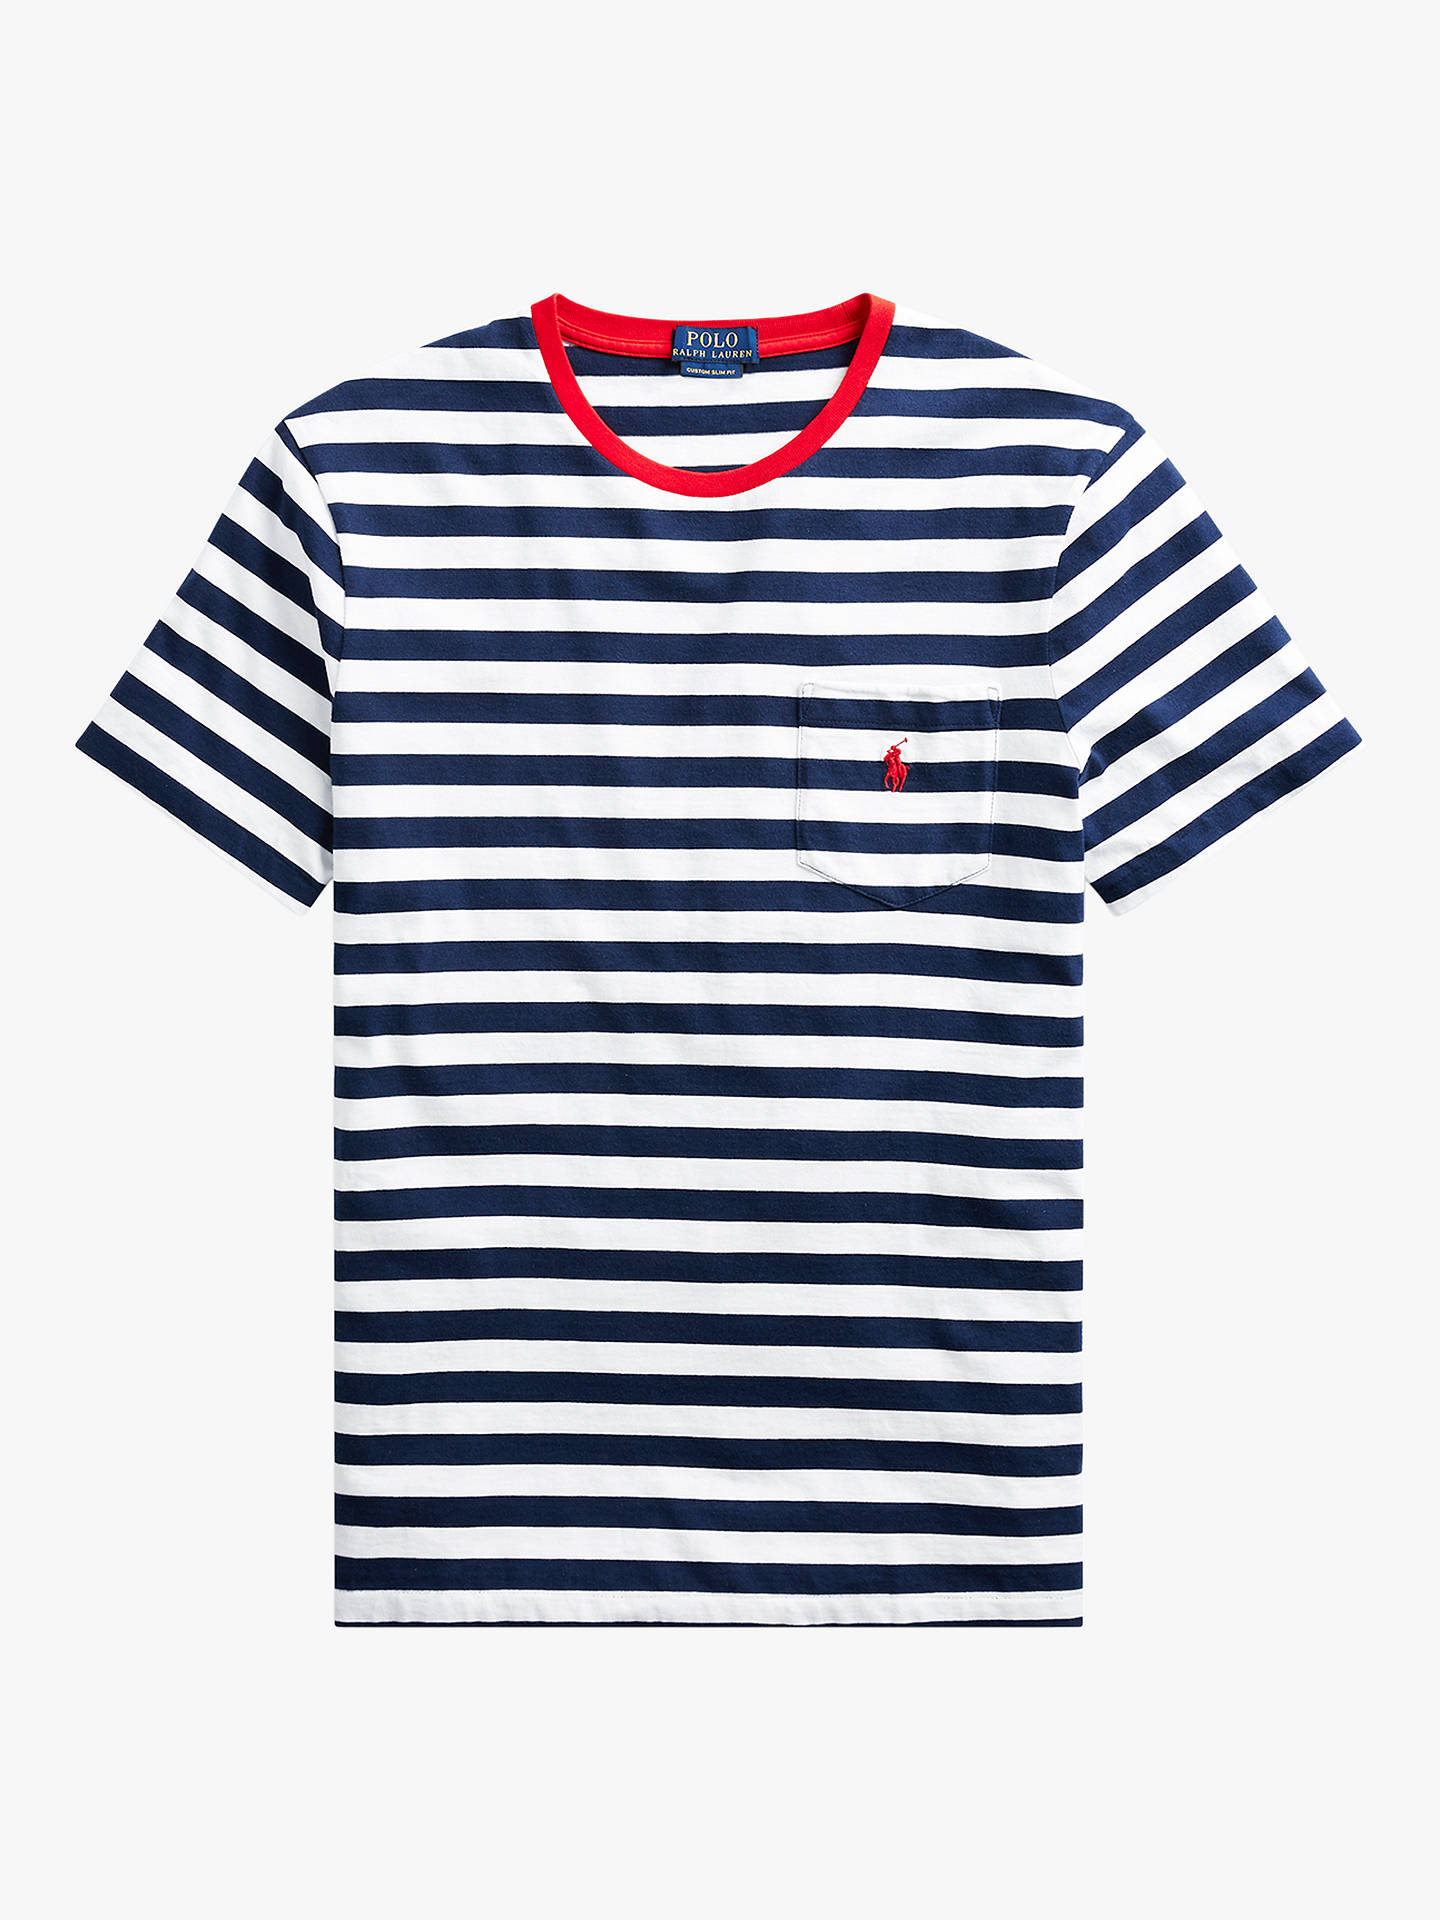 96a65f1a ... Buy Polo Ralph Lauren Stripe Pocket Short Sleeve T-Shirt, Navy/White,